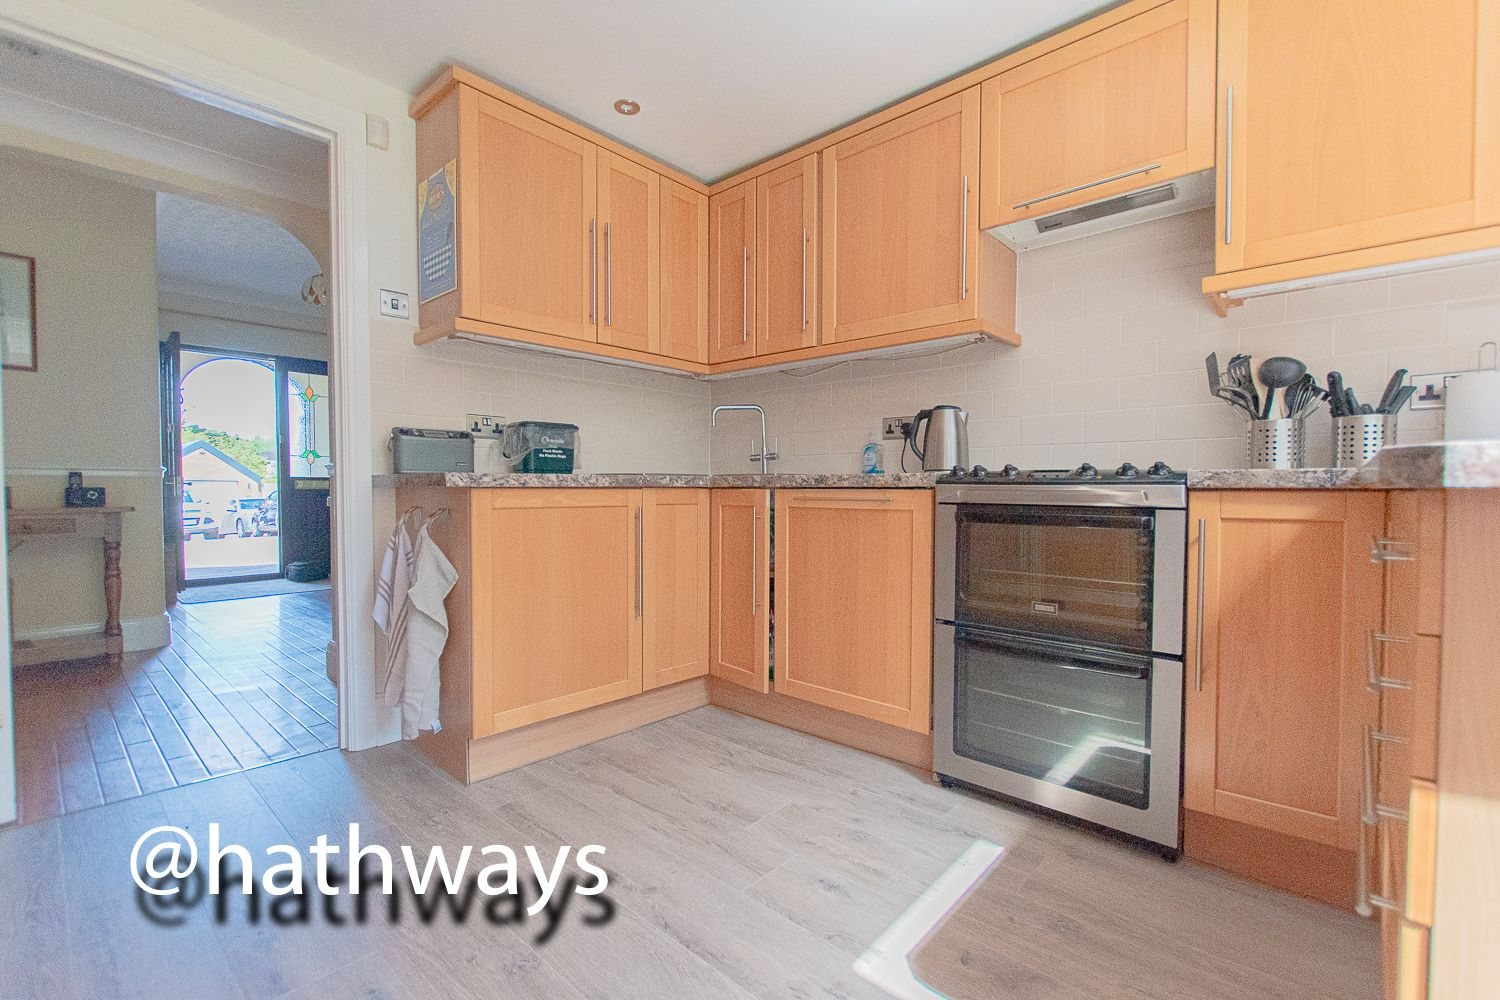 4 bed house for sale in Ashford Close South  - Property Image 19